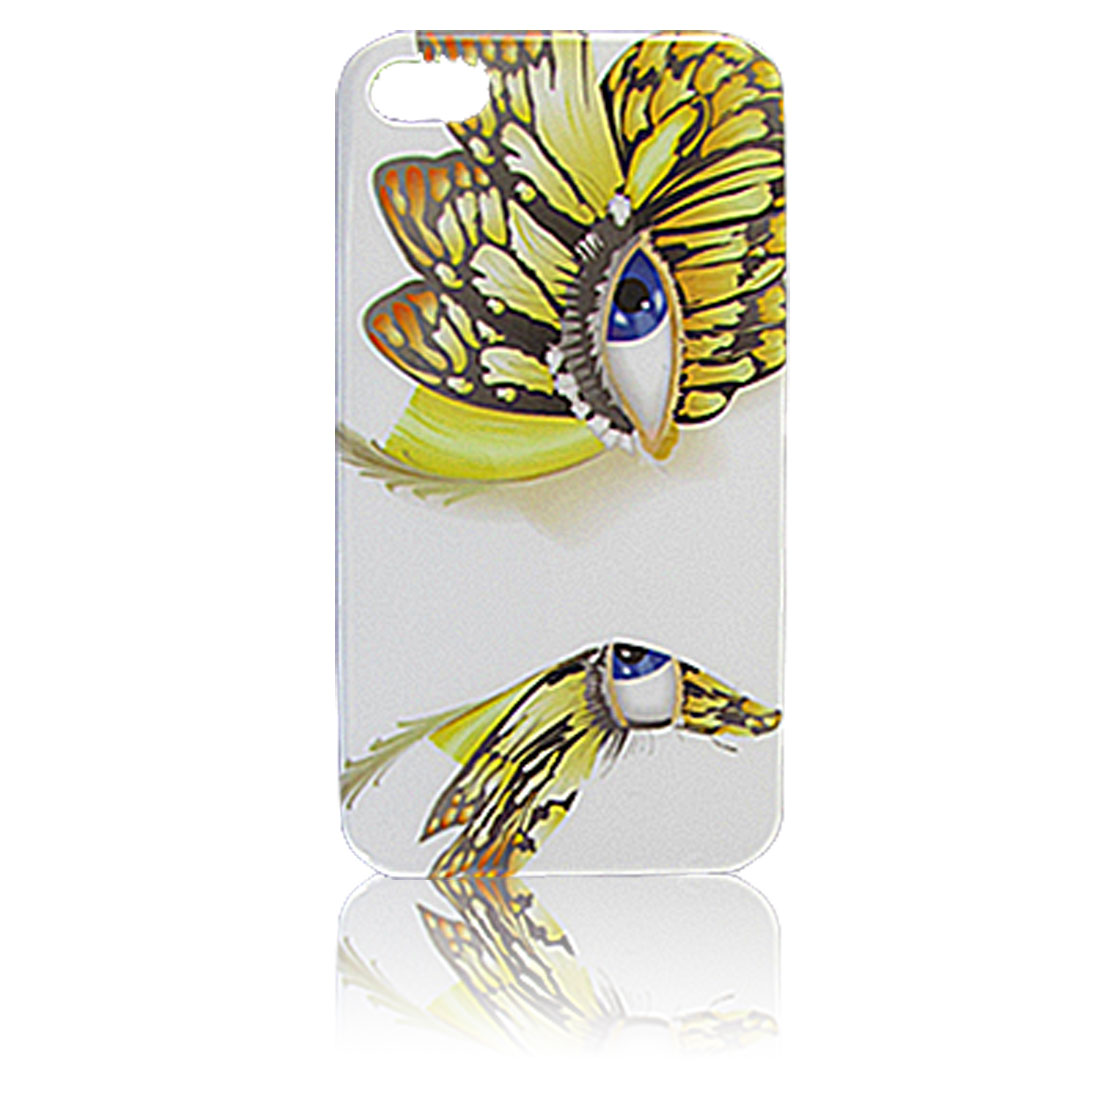 Hard Plastic IMD Yellow Butterfly Printed White Back Case Protector for iPhone 4 4G 4S 4GS